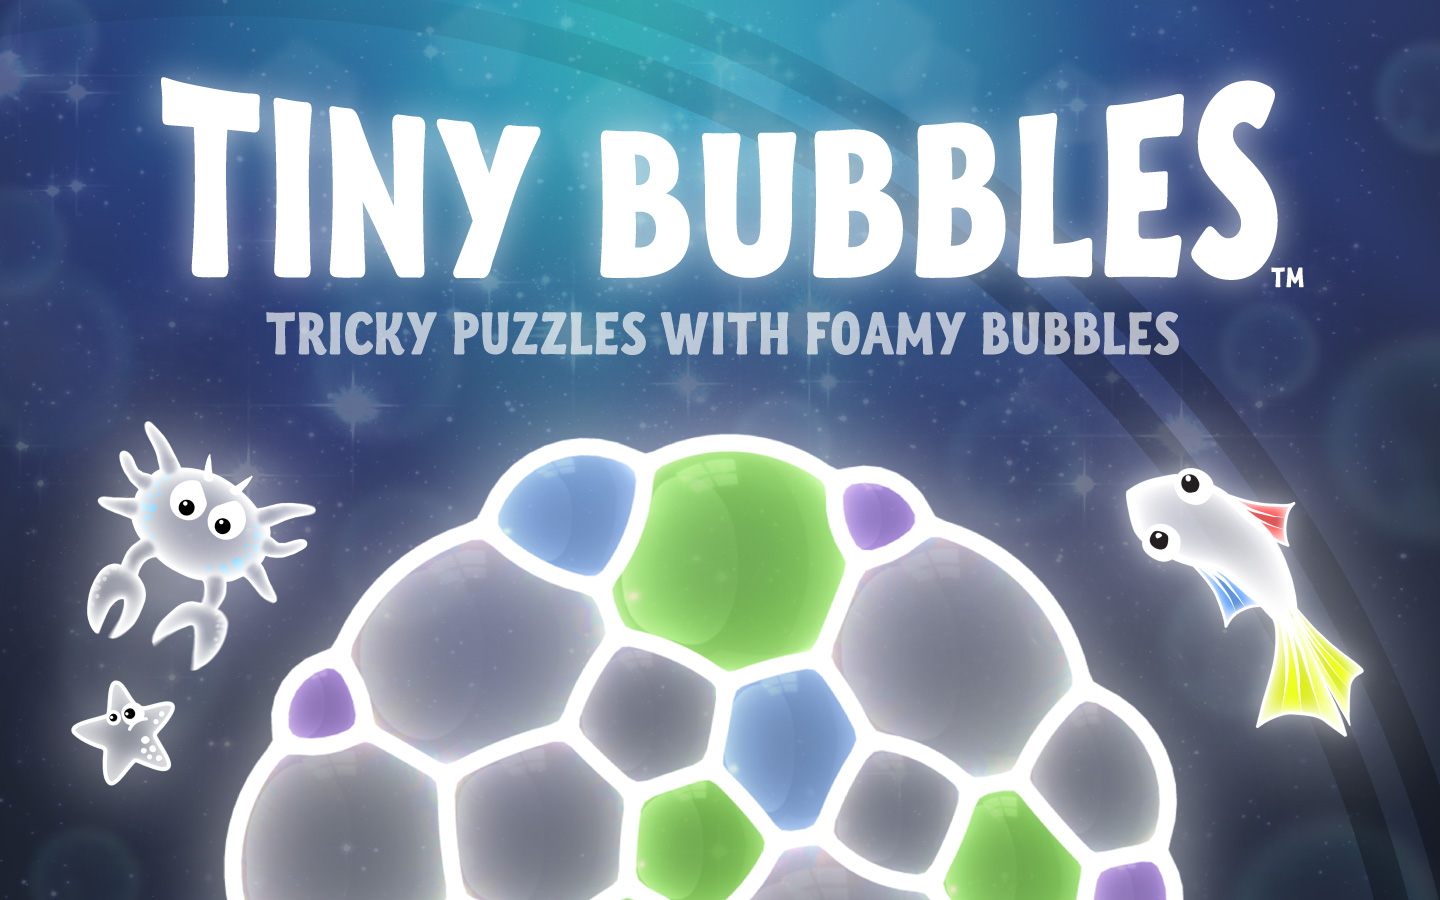 5 Ways Tiny Bubbles revolutionizes puzzle games